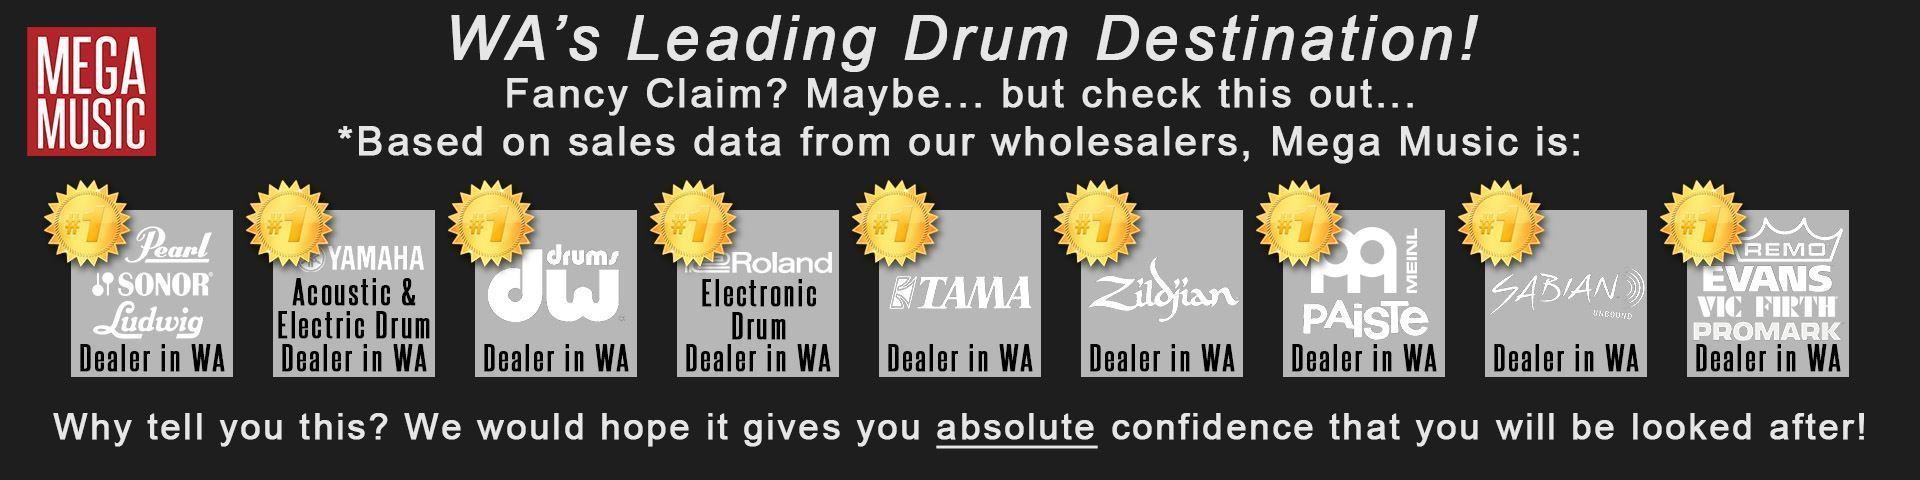 Western Australia's Leading Drum Destination - Mega Music